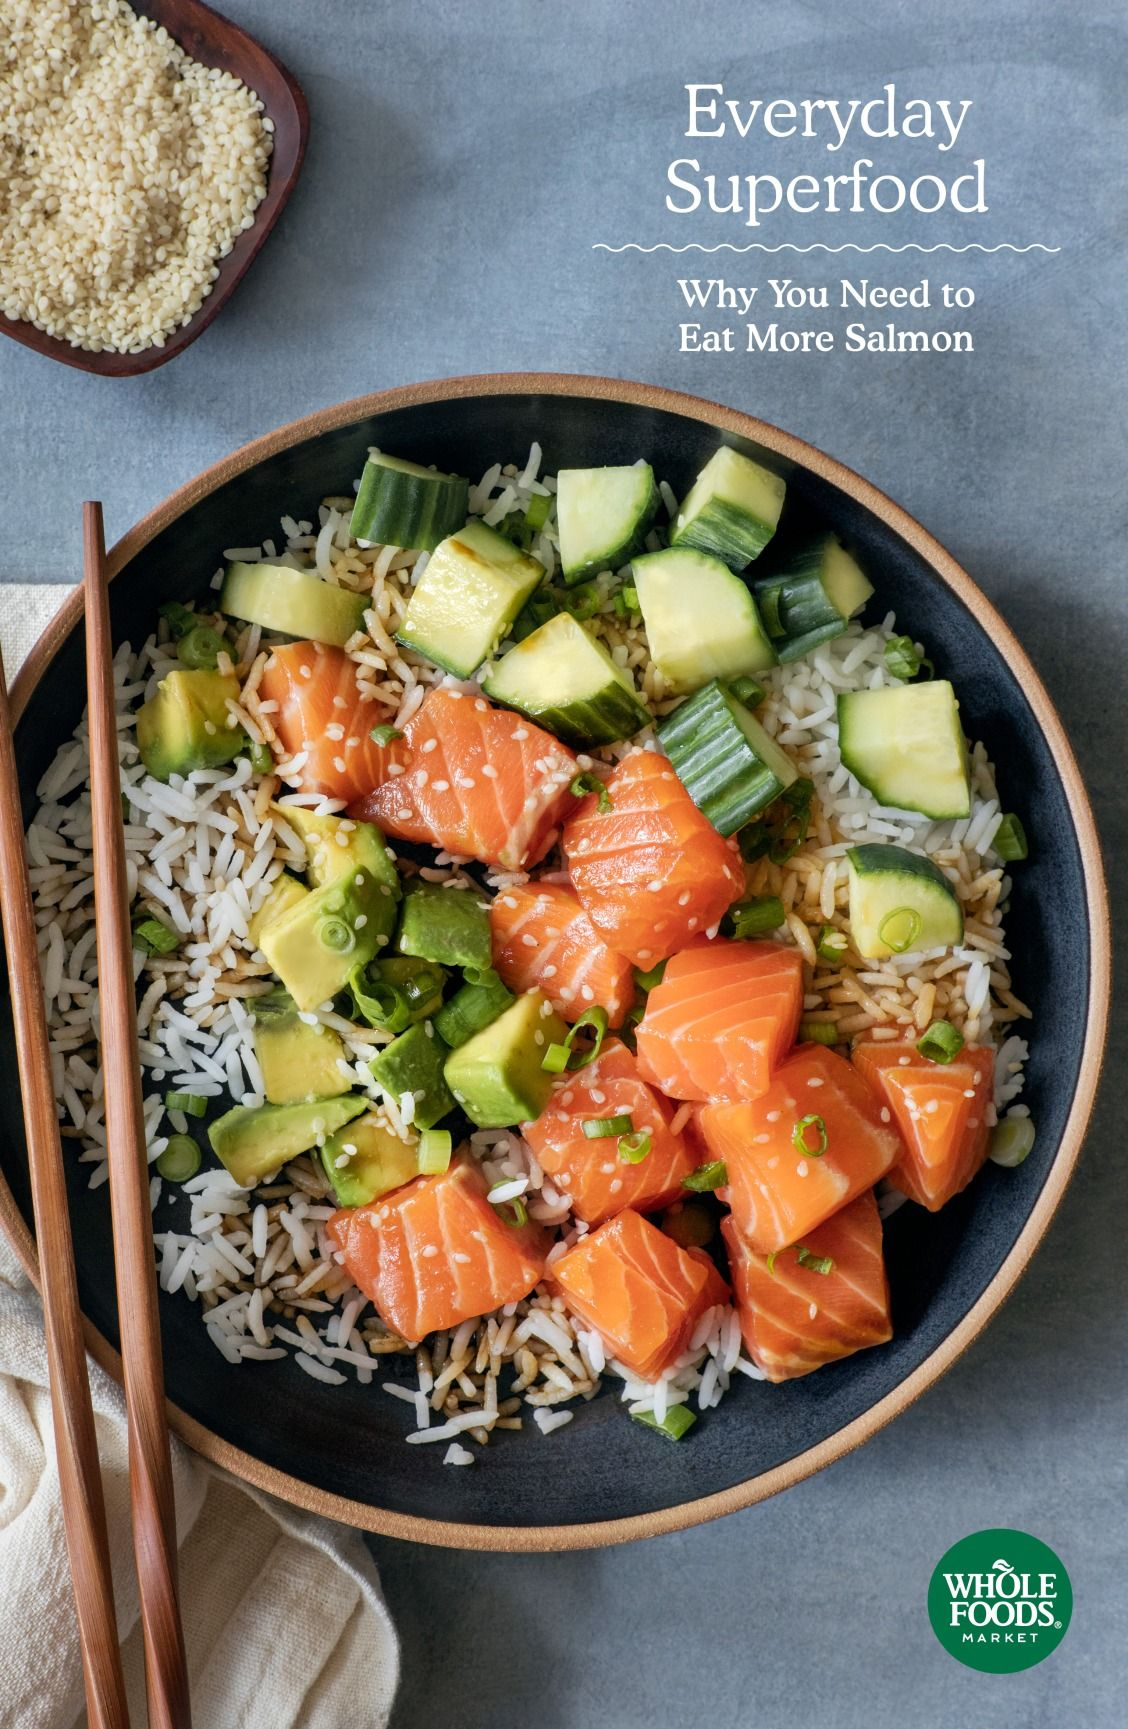 Everyday Superfood Why You Need to Eat More Salmon